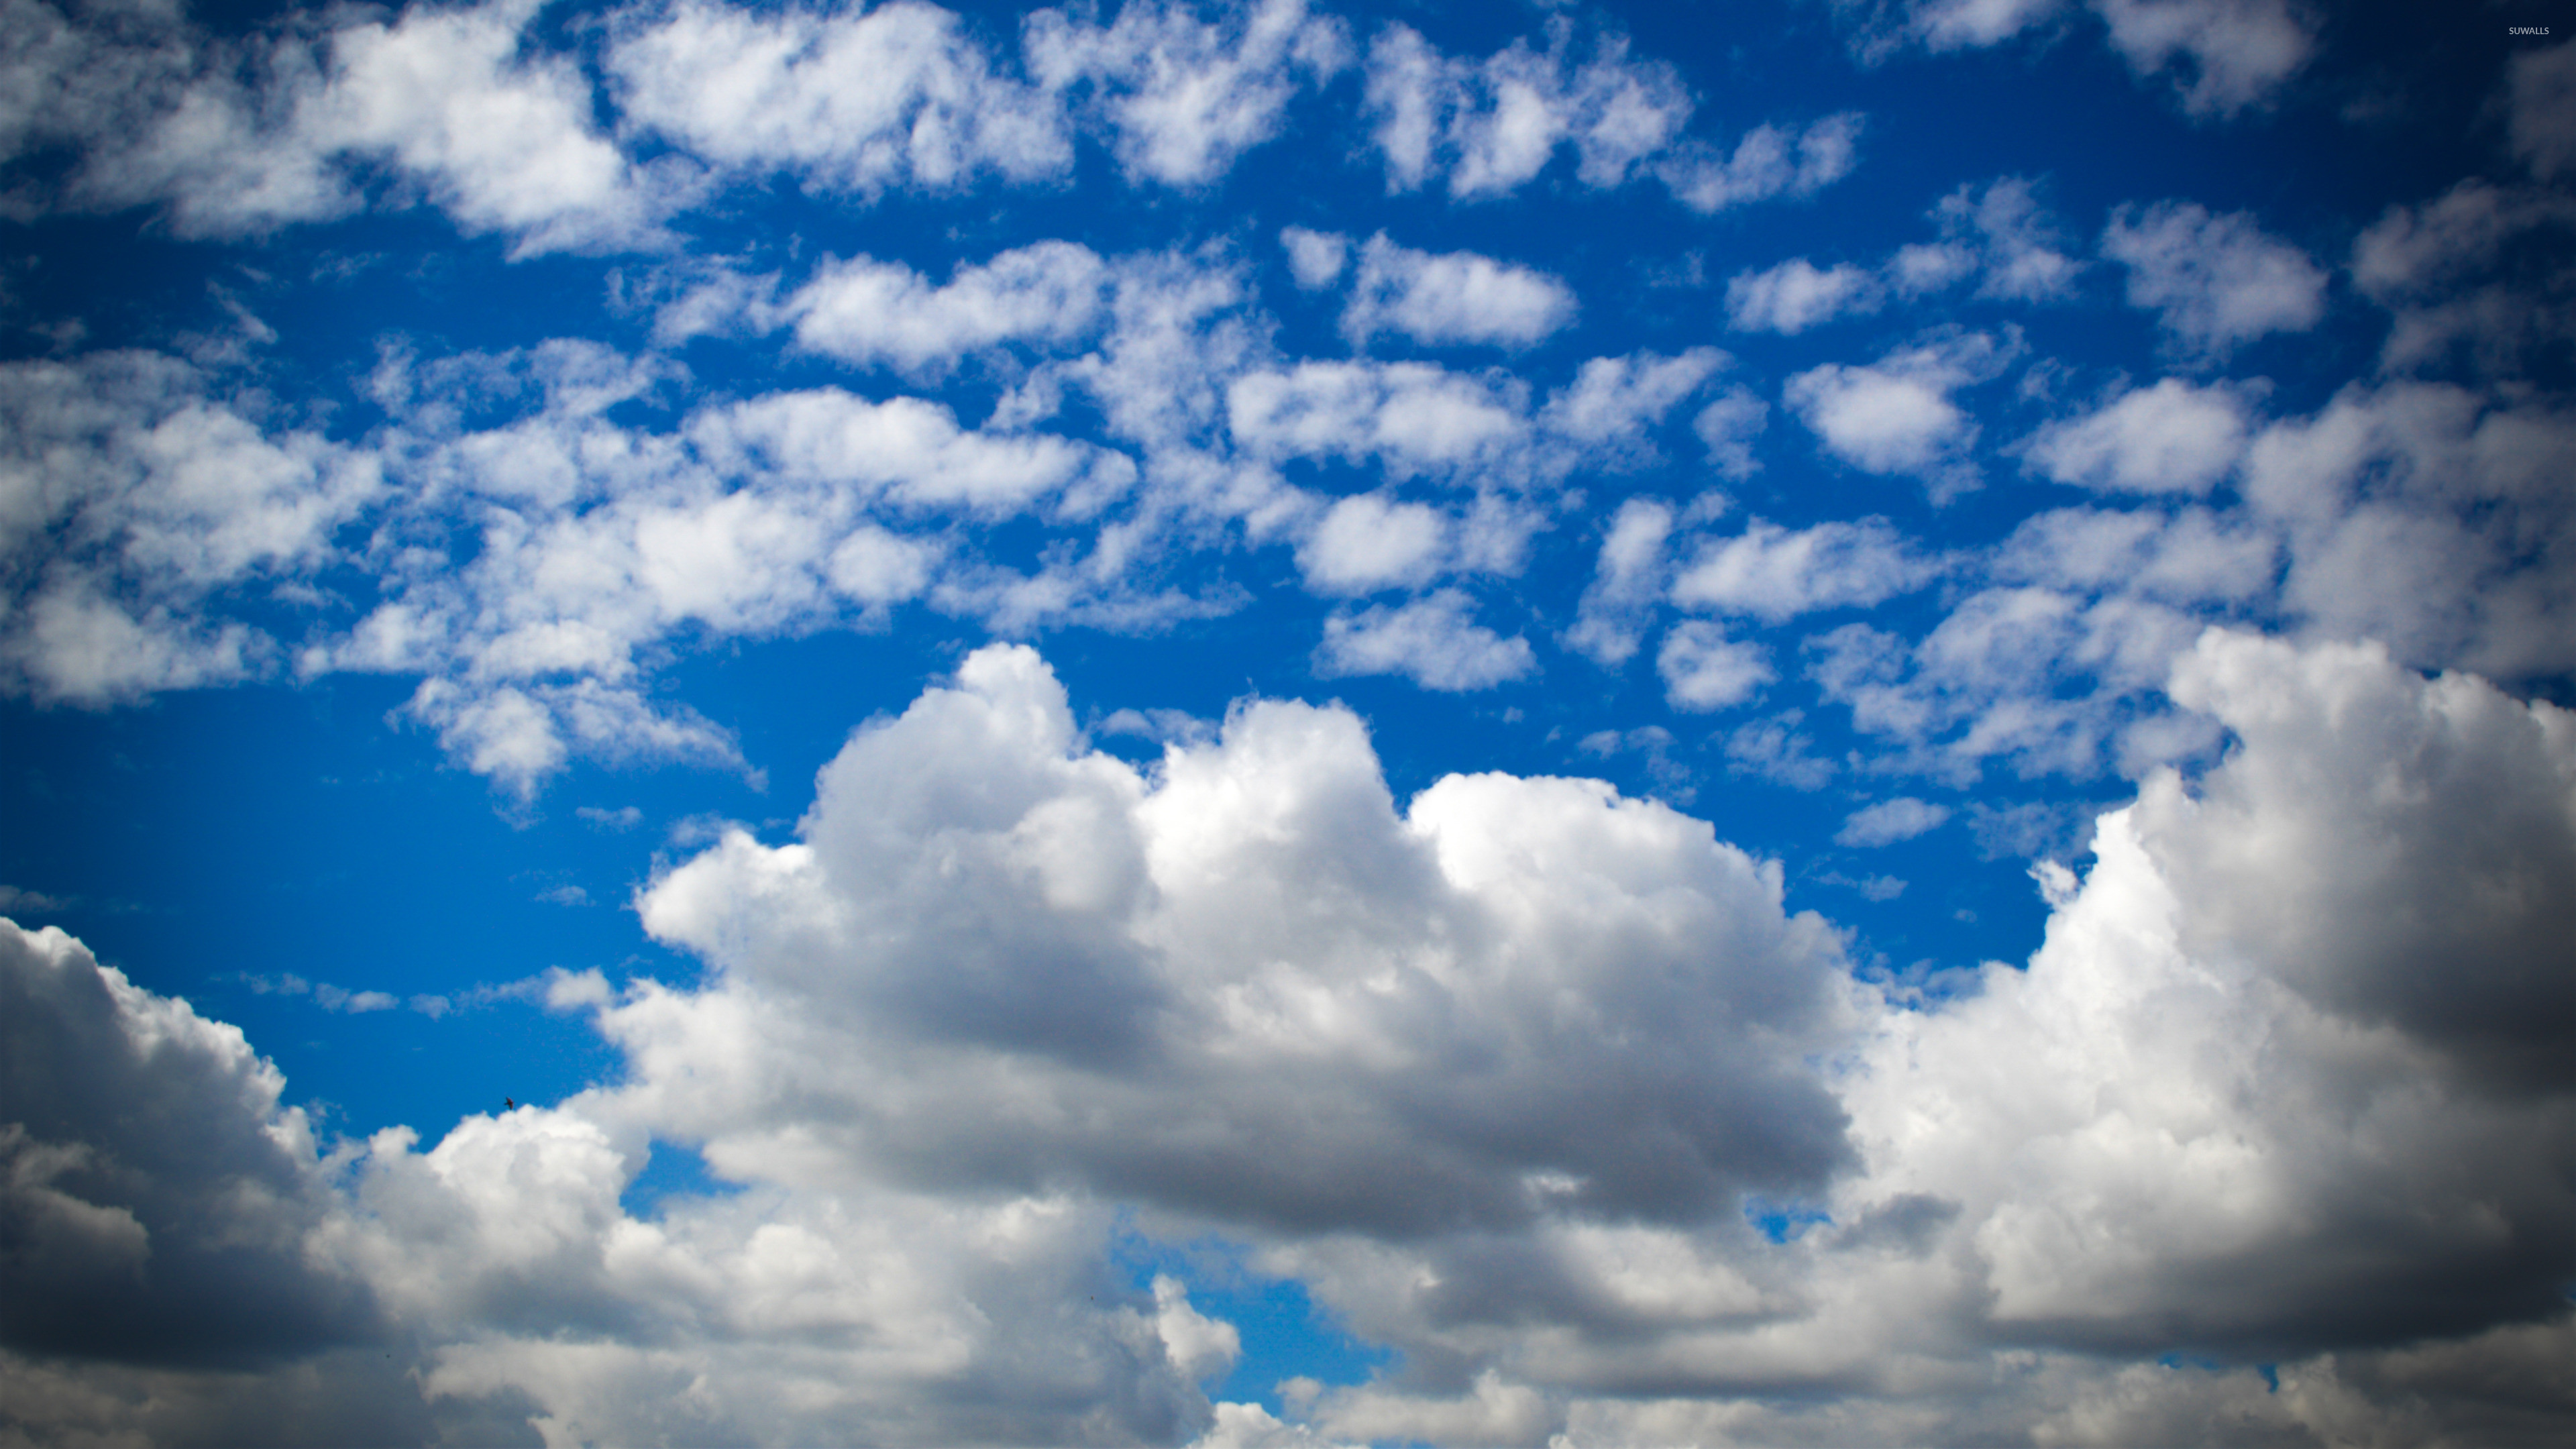 3840x2160 Fluffy clouds on the deep blue sky wallpaper